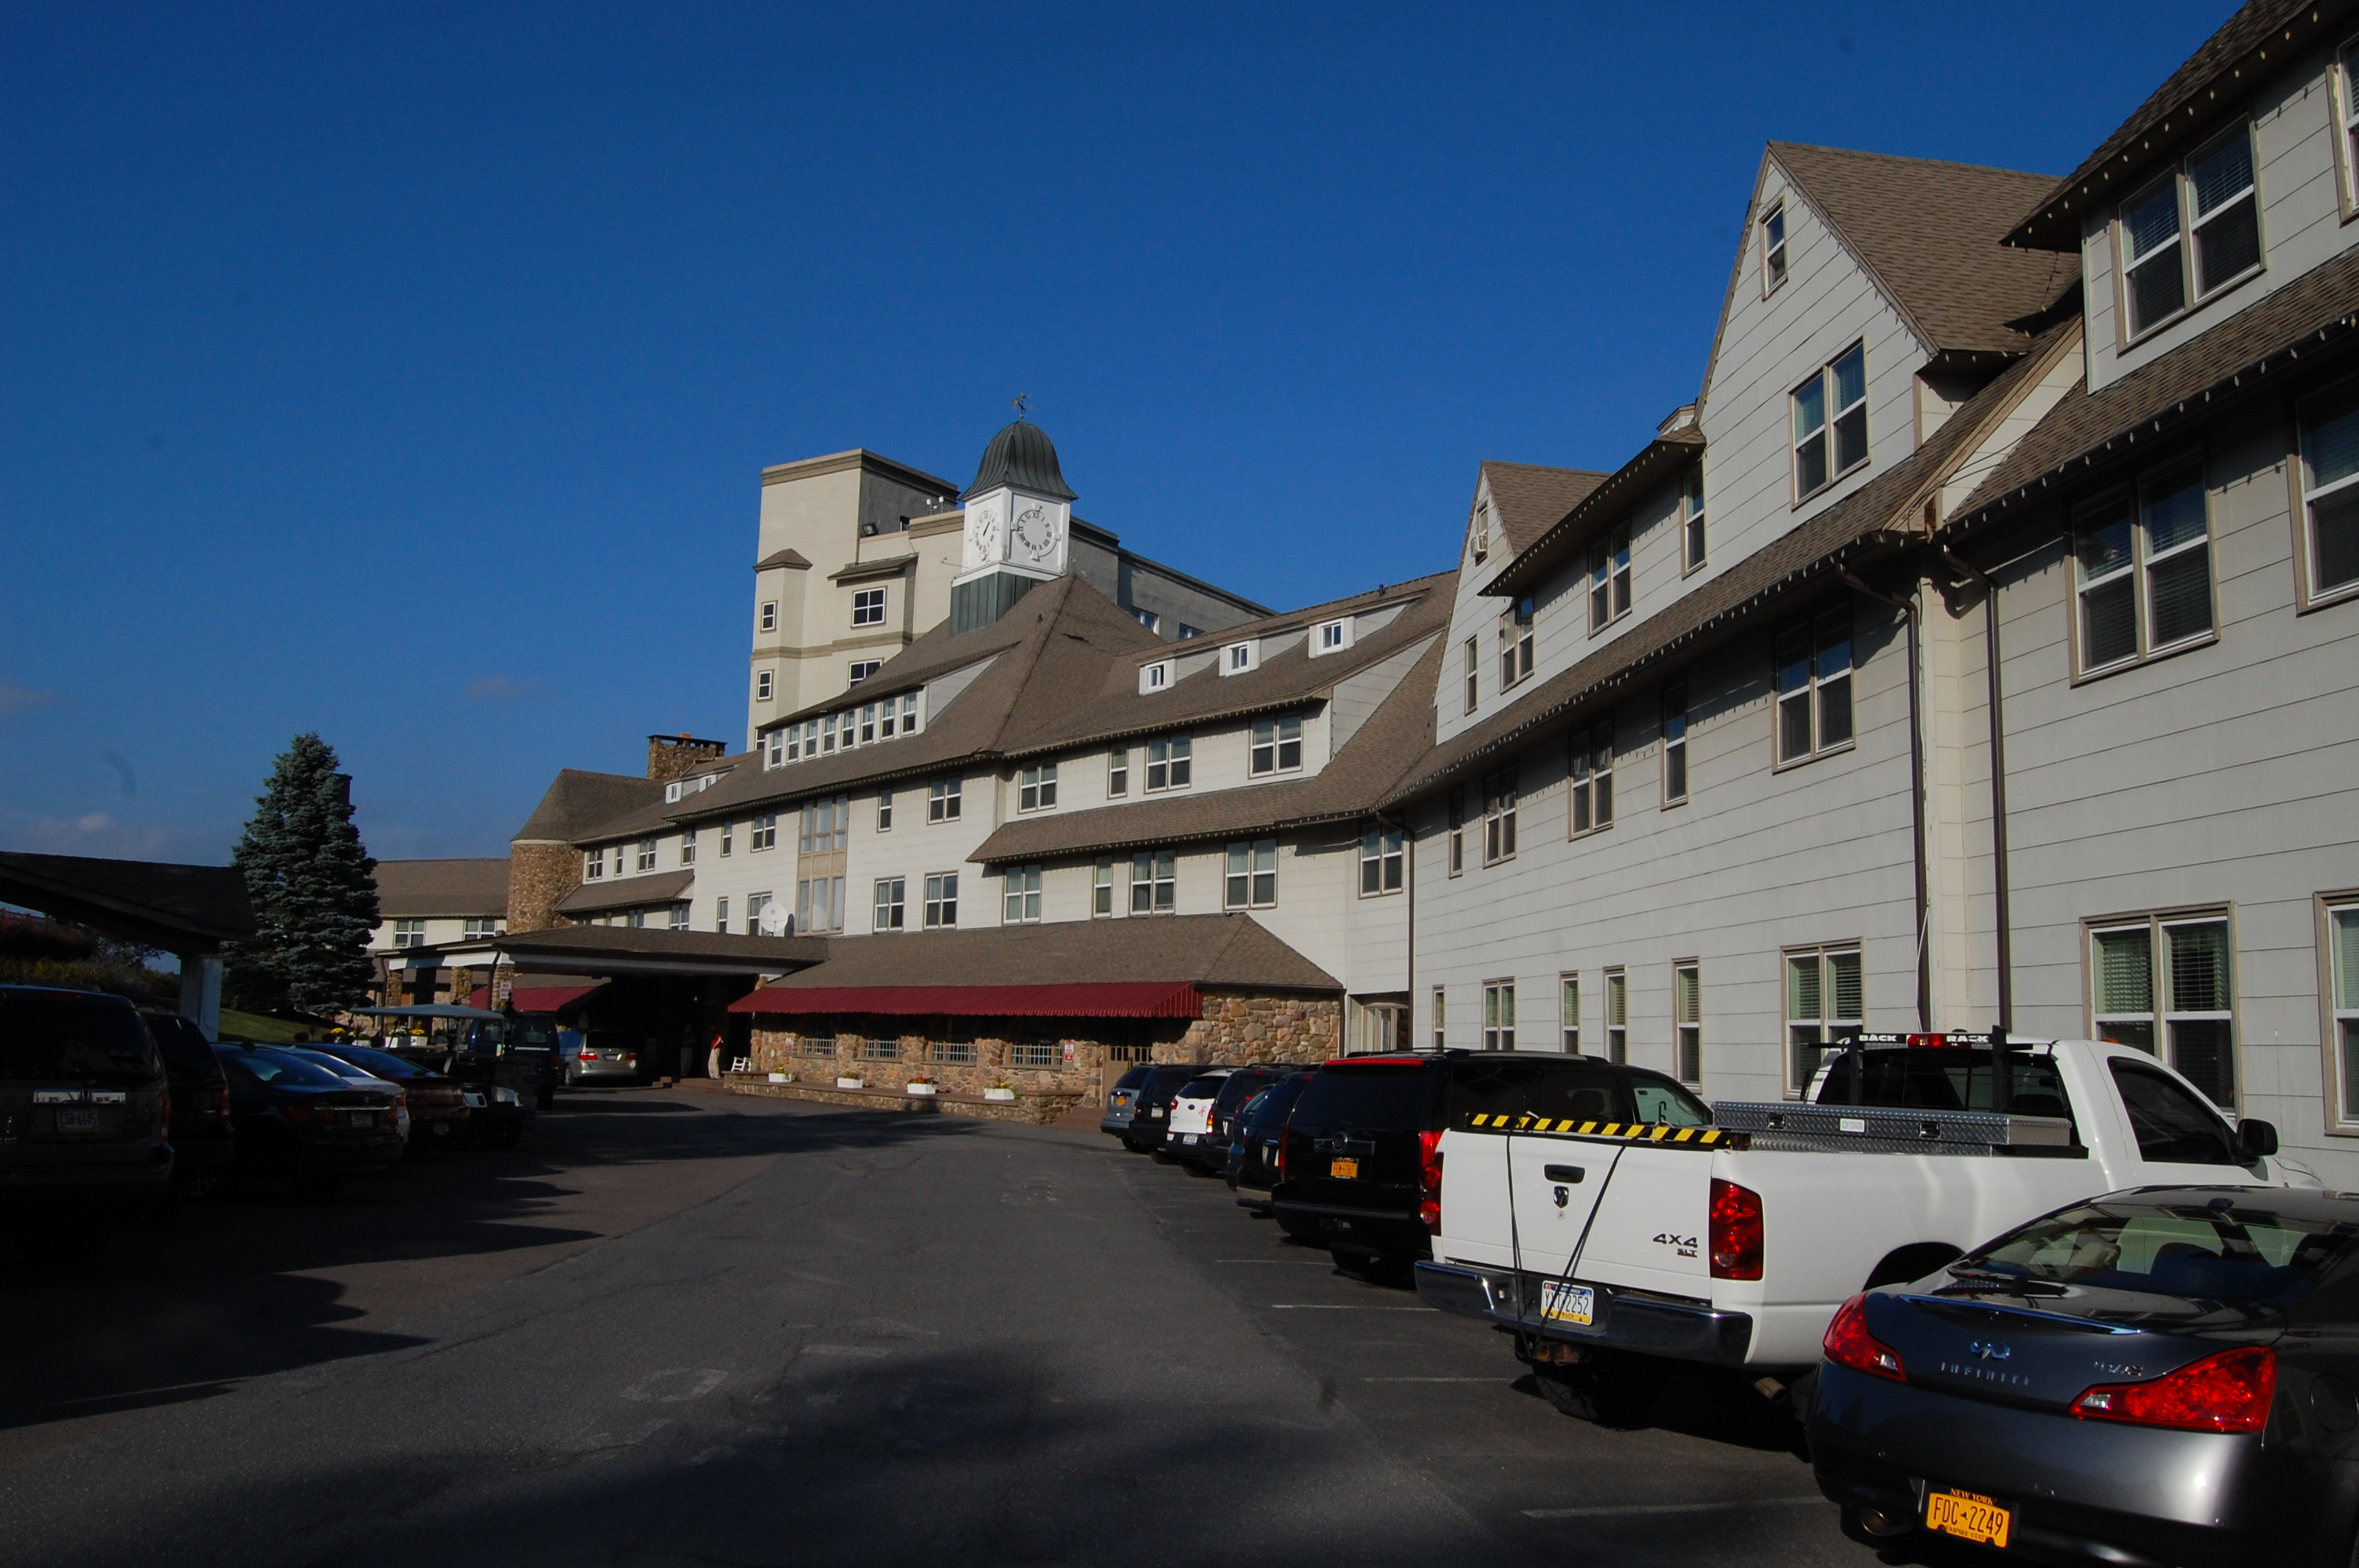 pocono manor Pocono manor is an unincorporated community in monroe county, pennsylvania, united states, located at approximately latitude 411 and longitude -75359, at an elevation of 1,706 feet, on.